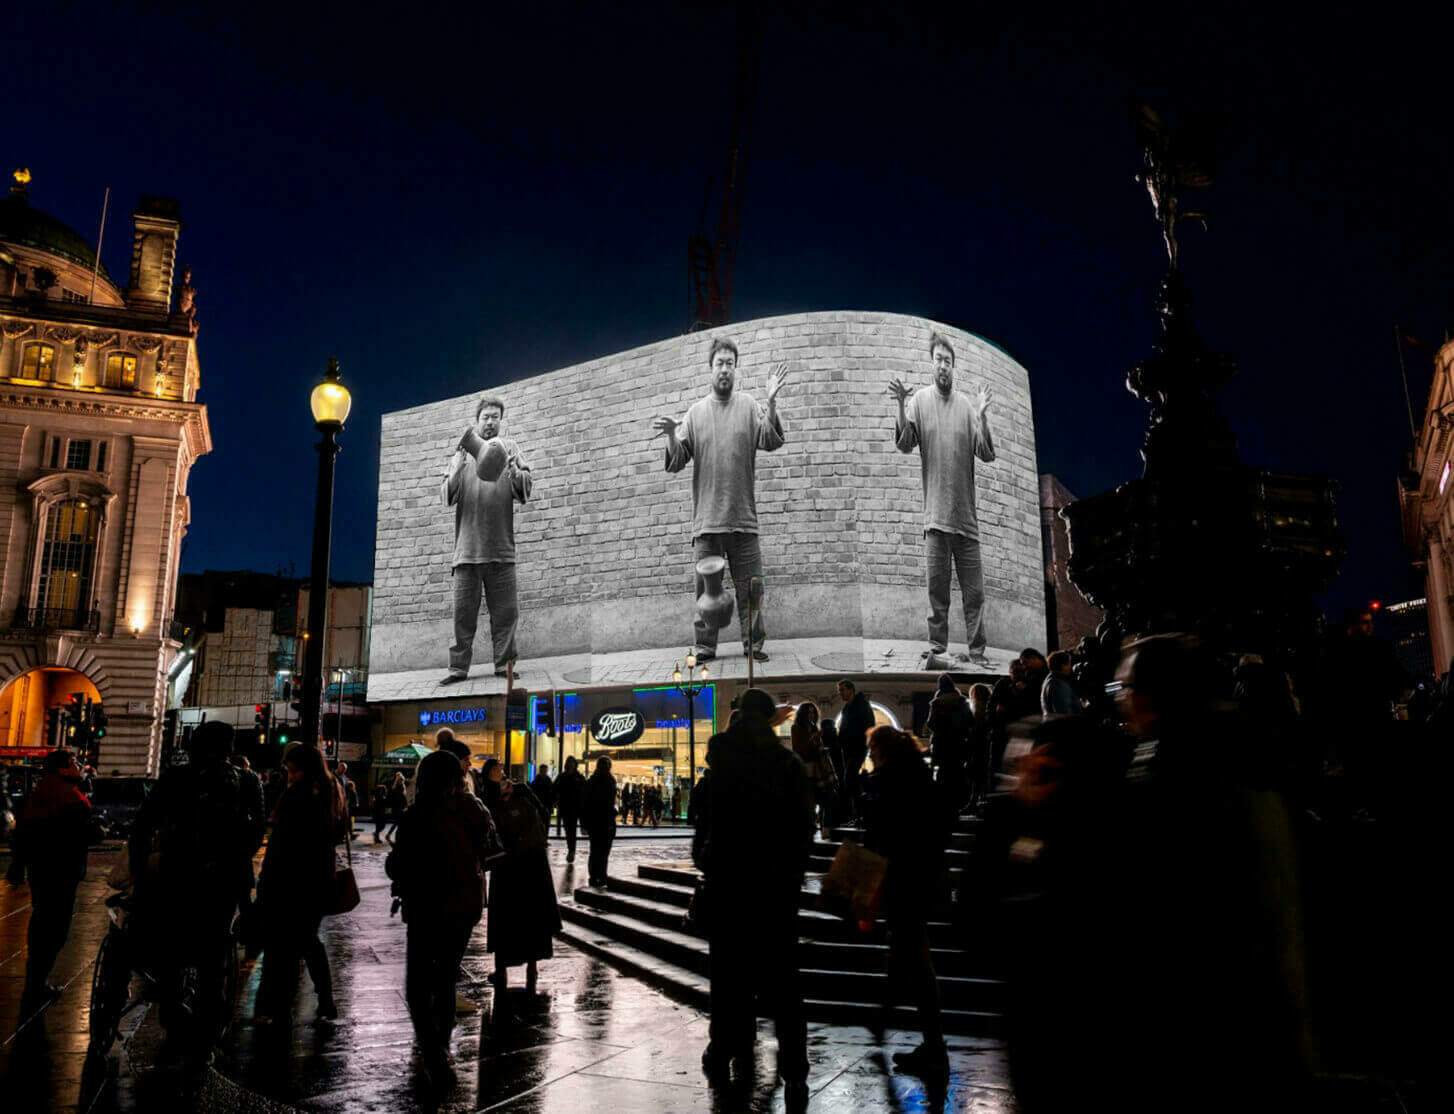 CIRCA public art project launches in Piccadilly Circus with work by Ai Weiwei